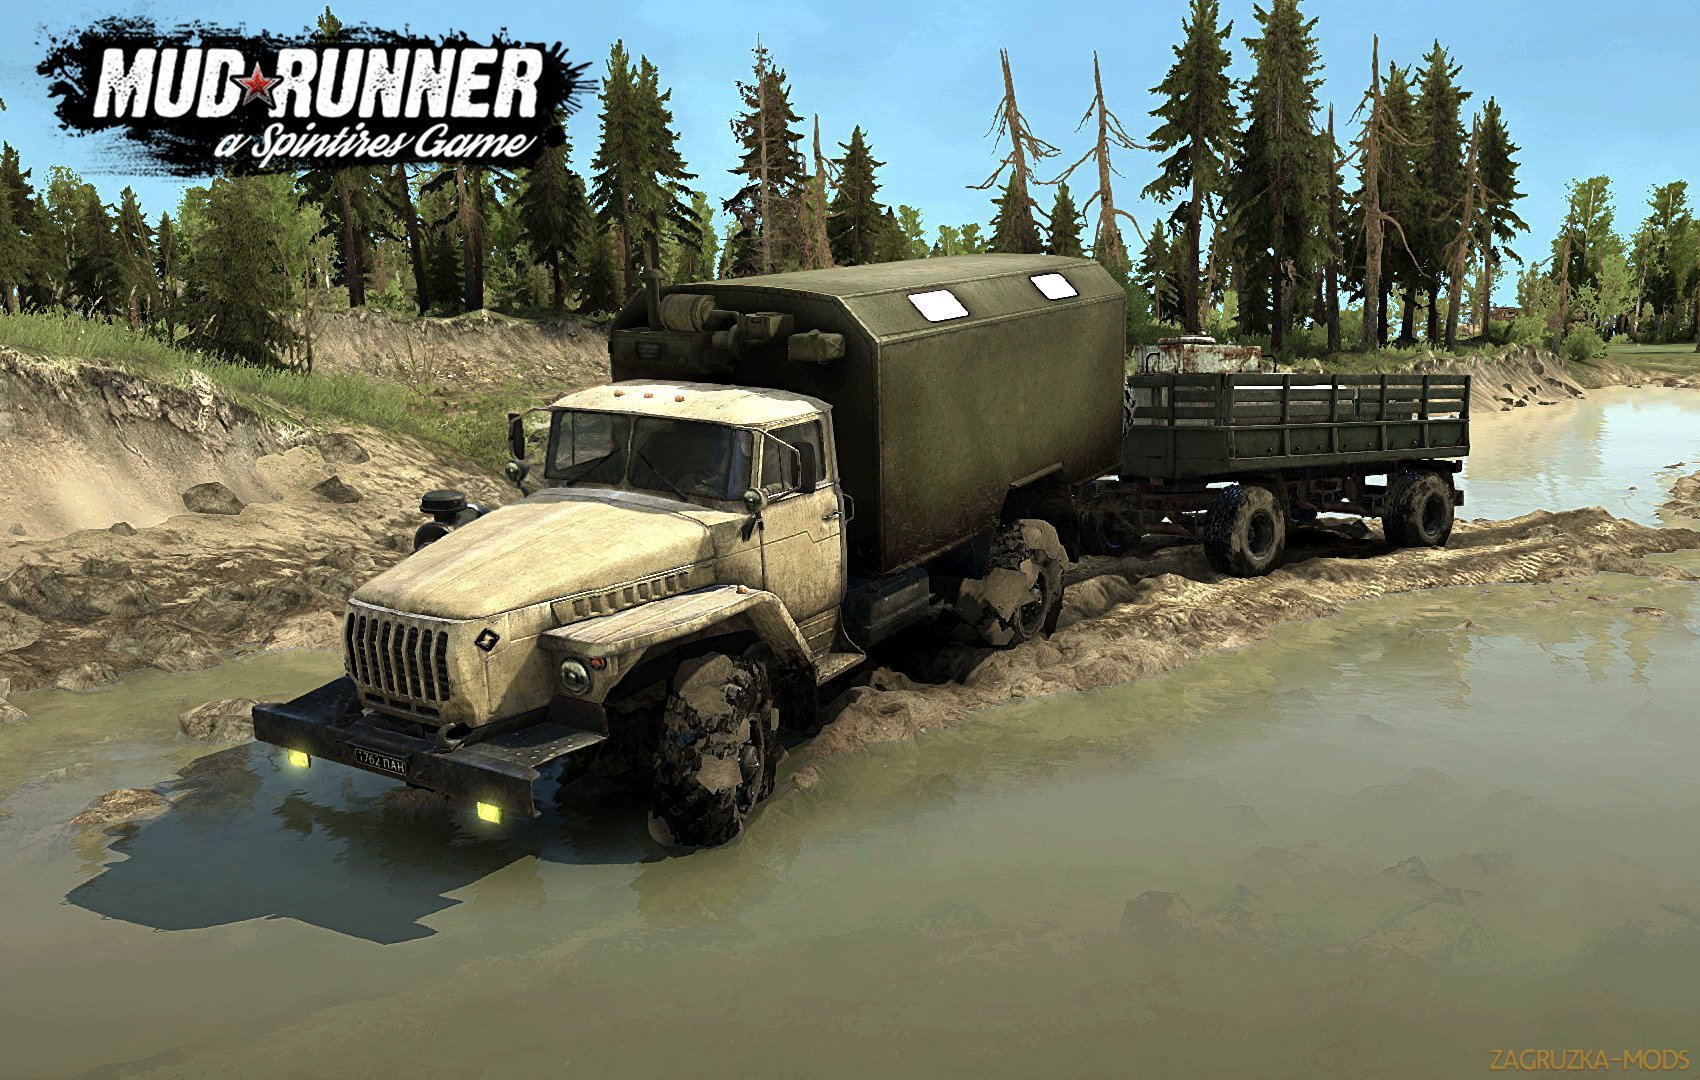 Ural-43206 v1.0 (v26.10.17) for SpinTires: MudRunner